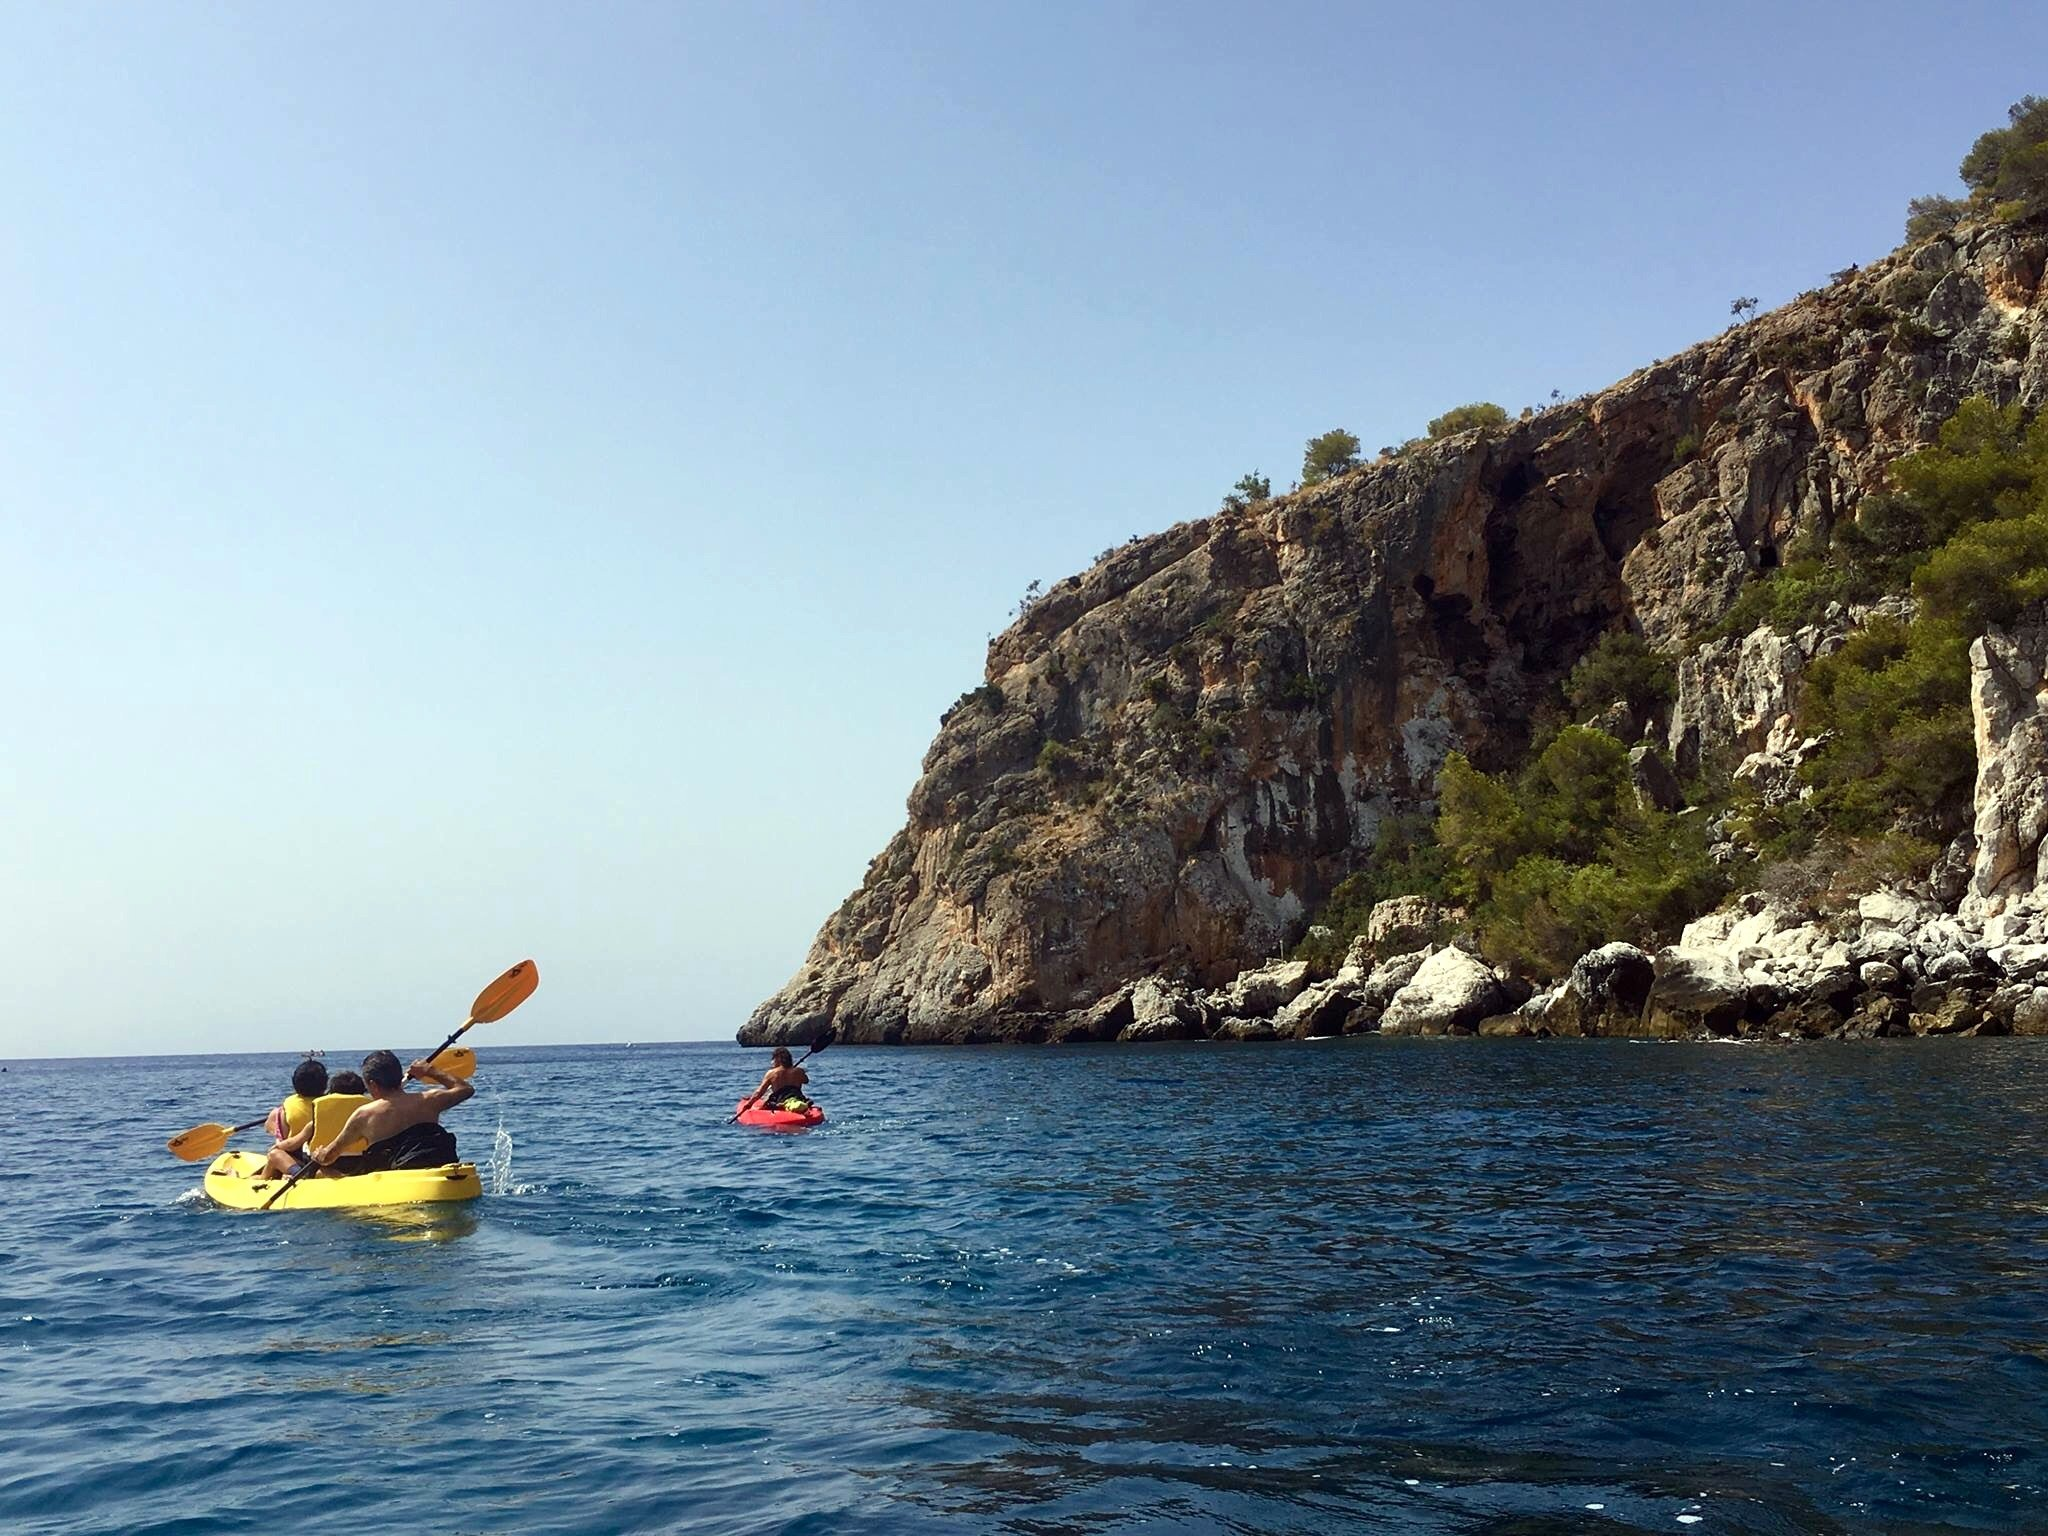 La Herradura Kayak Tours & SUP Tours! Glide along the beautiful blue sea, below the high cliffs and vegetation. Discover hidden caves and waterfalls, stop for a snorkel and swim or even a picnic!